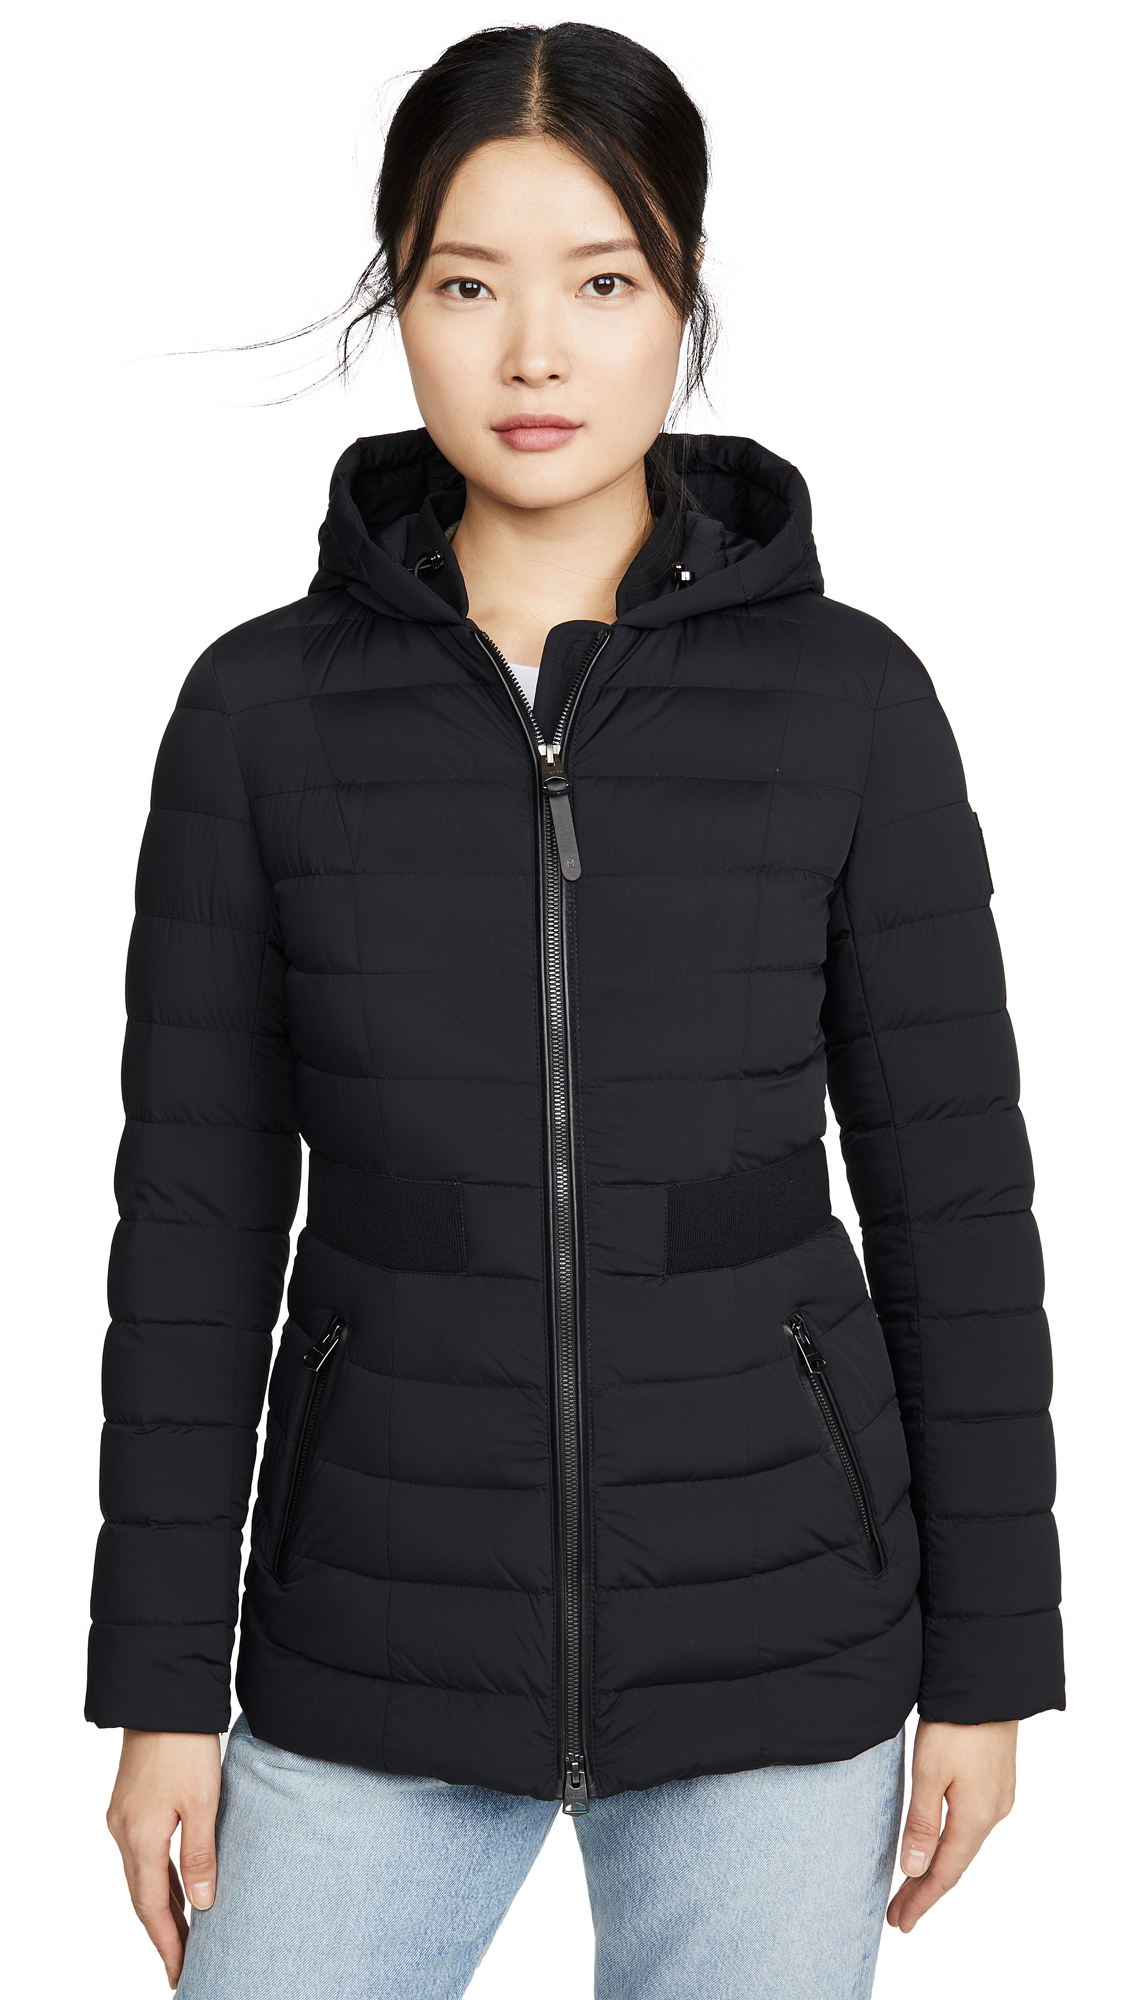 Buy Mackage Kaila Jacket online beautiful Mackage Jackets, Coats, Down Jackets